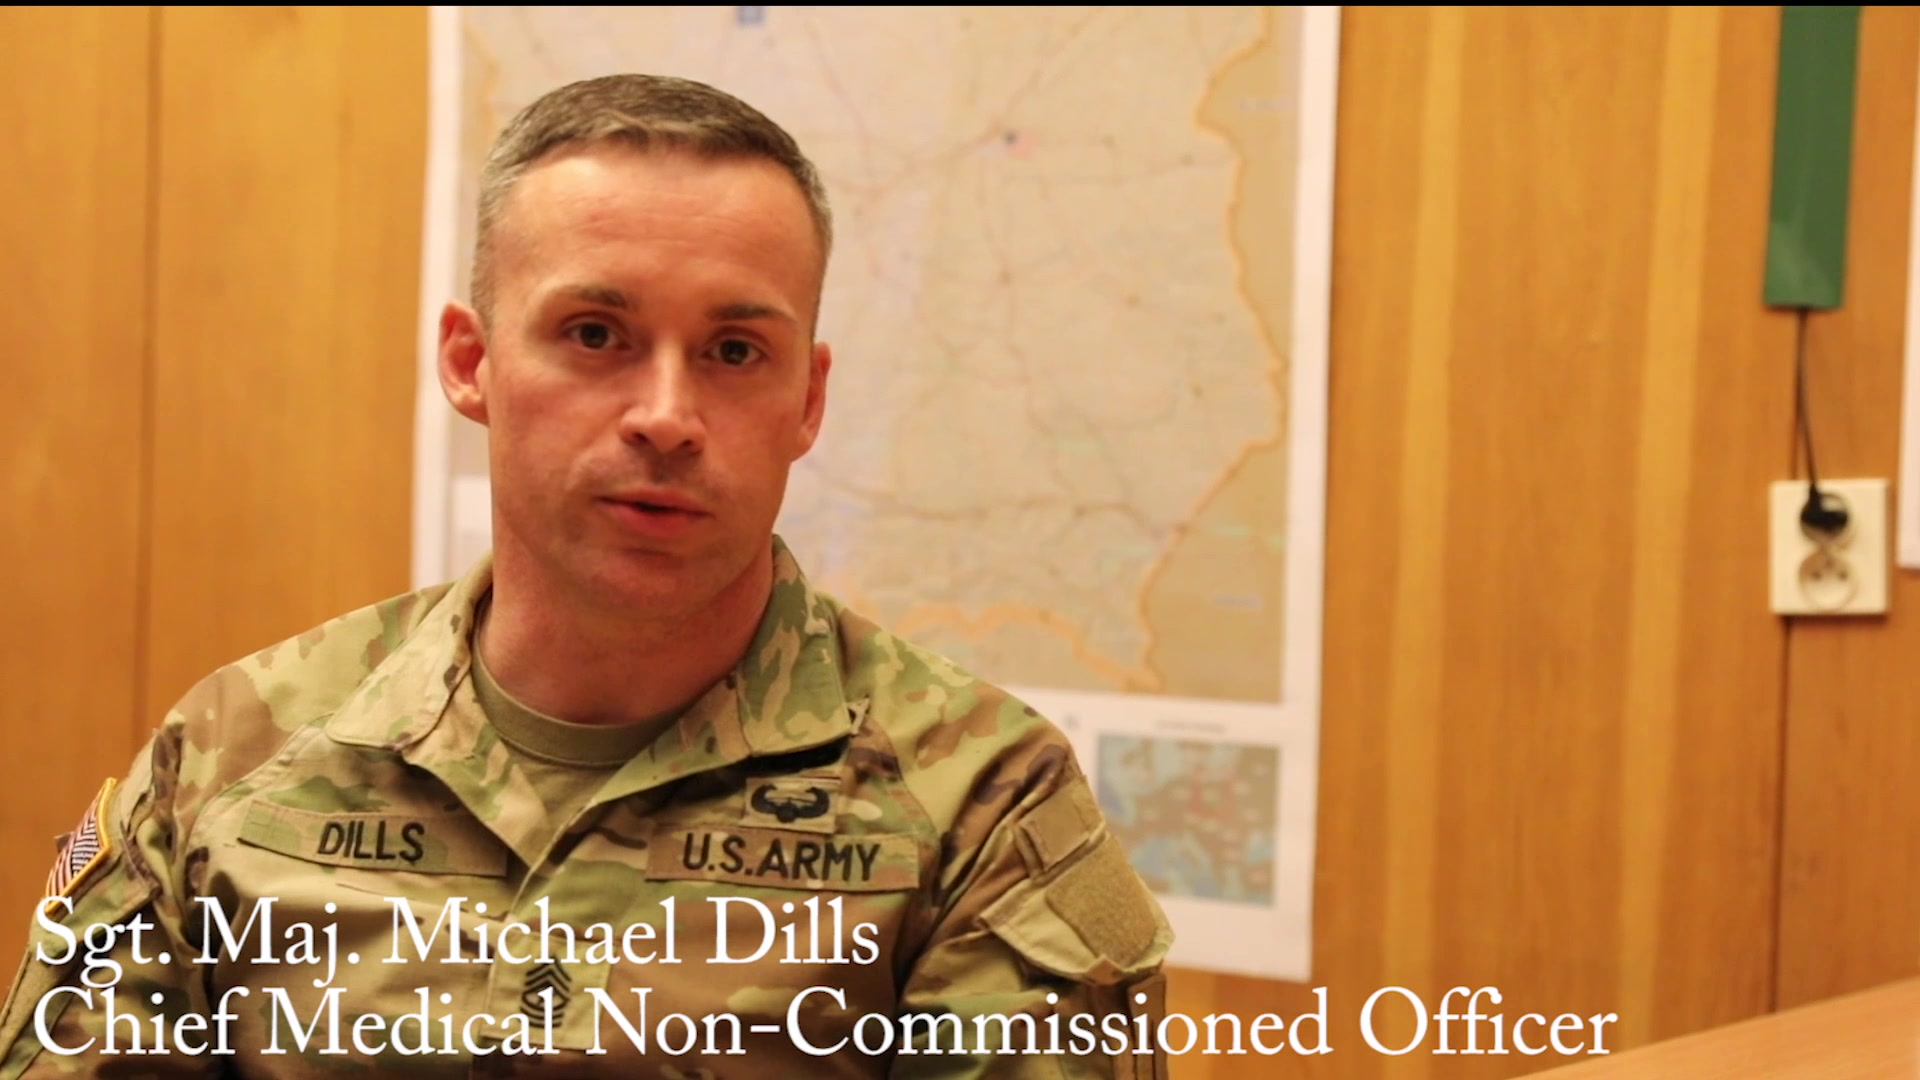 First Infantry Division, Forward, chief medical Noncommissioned Officer discusses COVID-19.